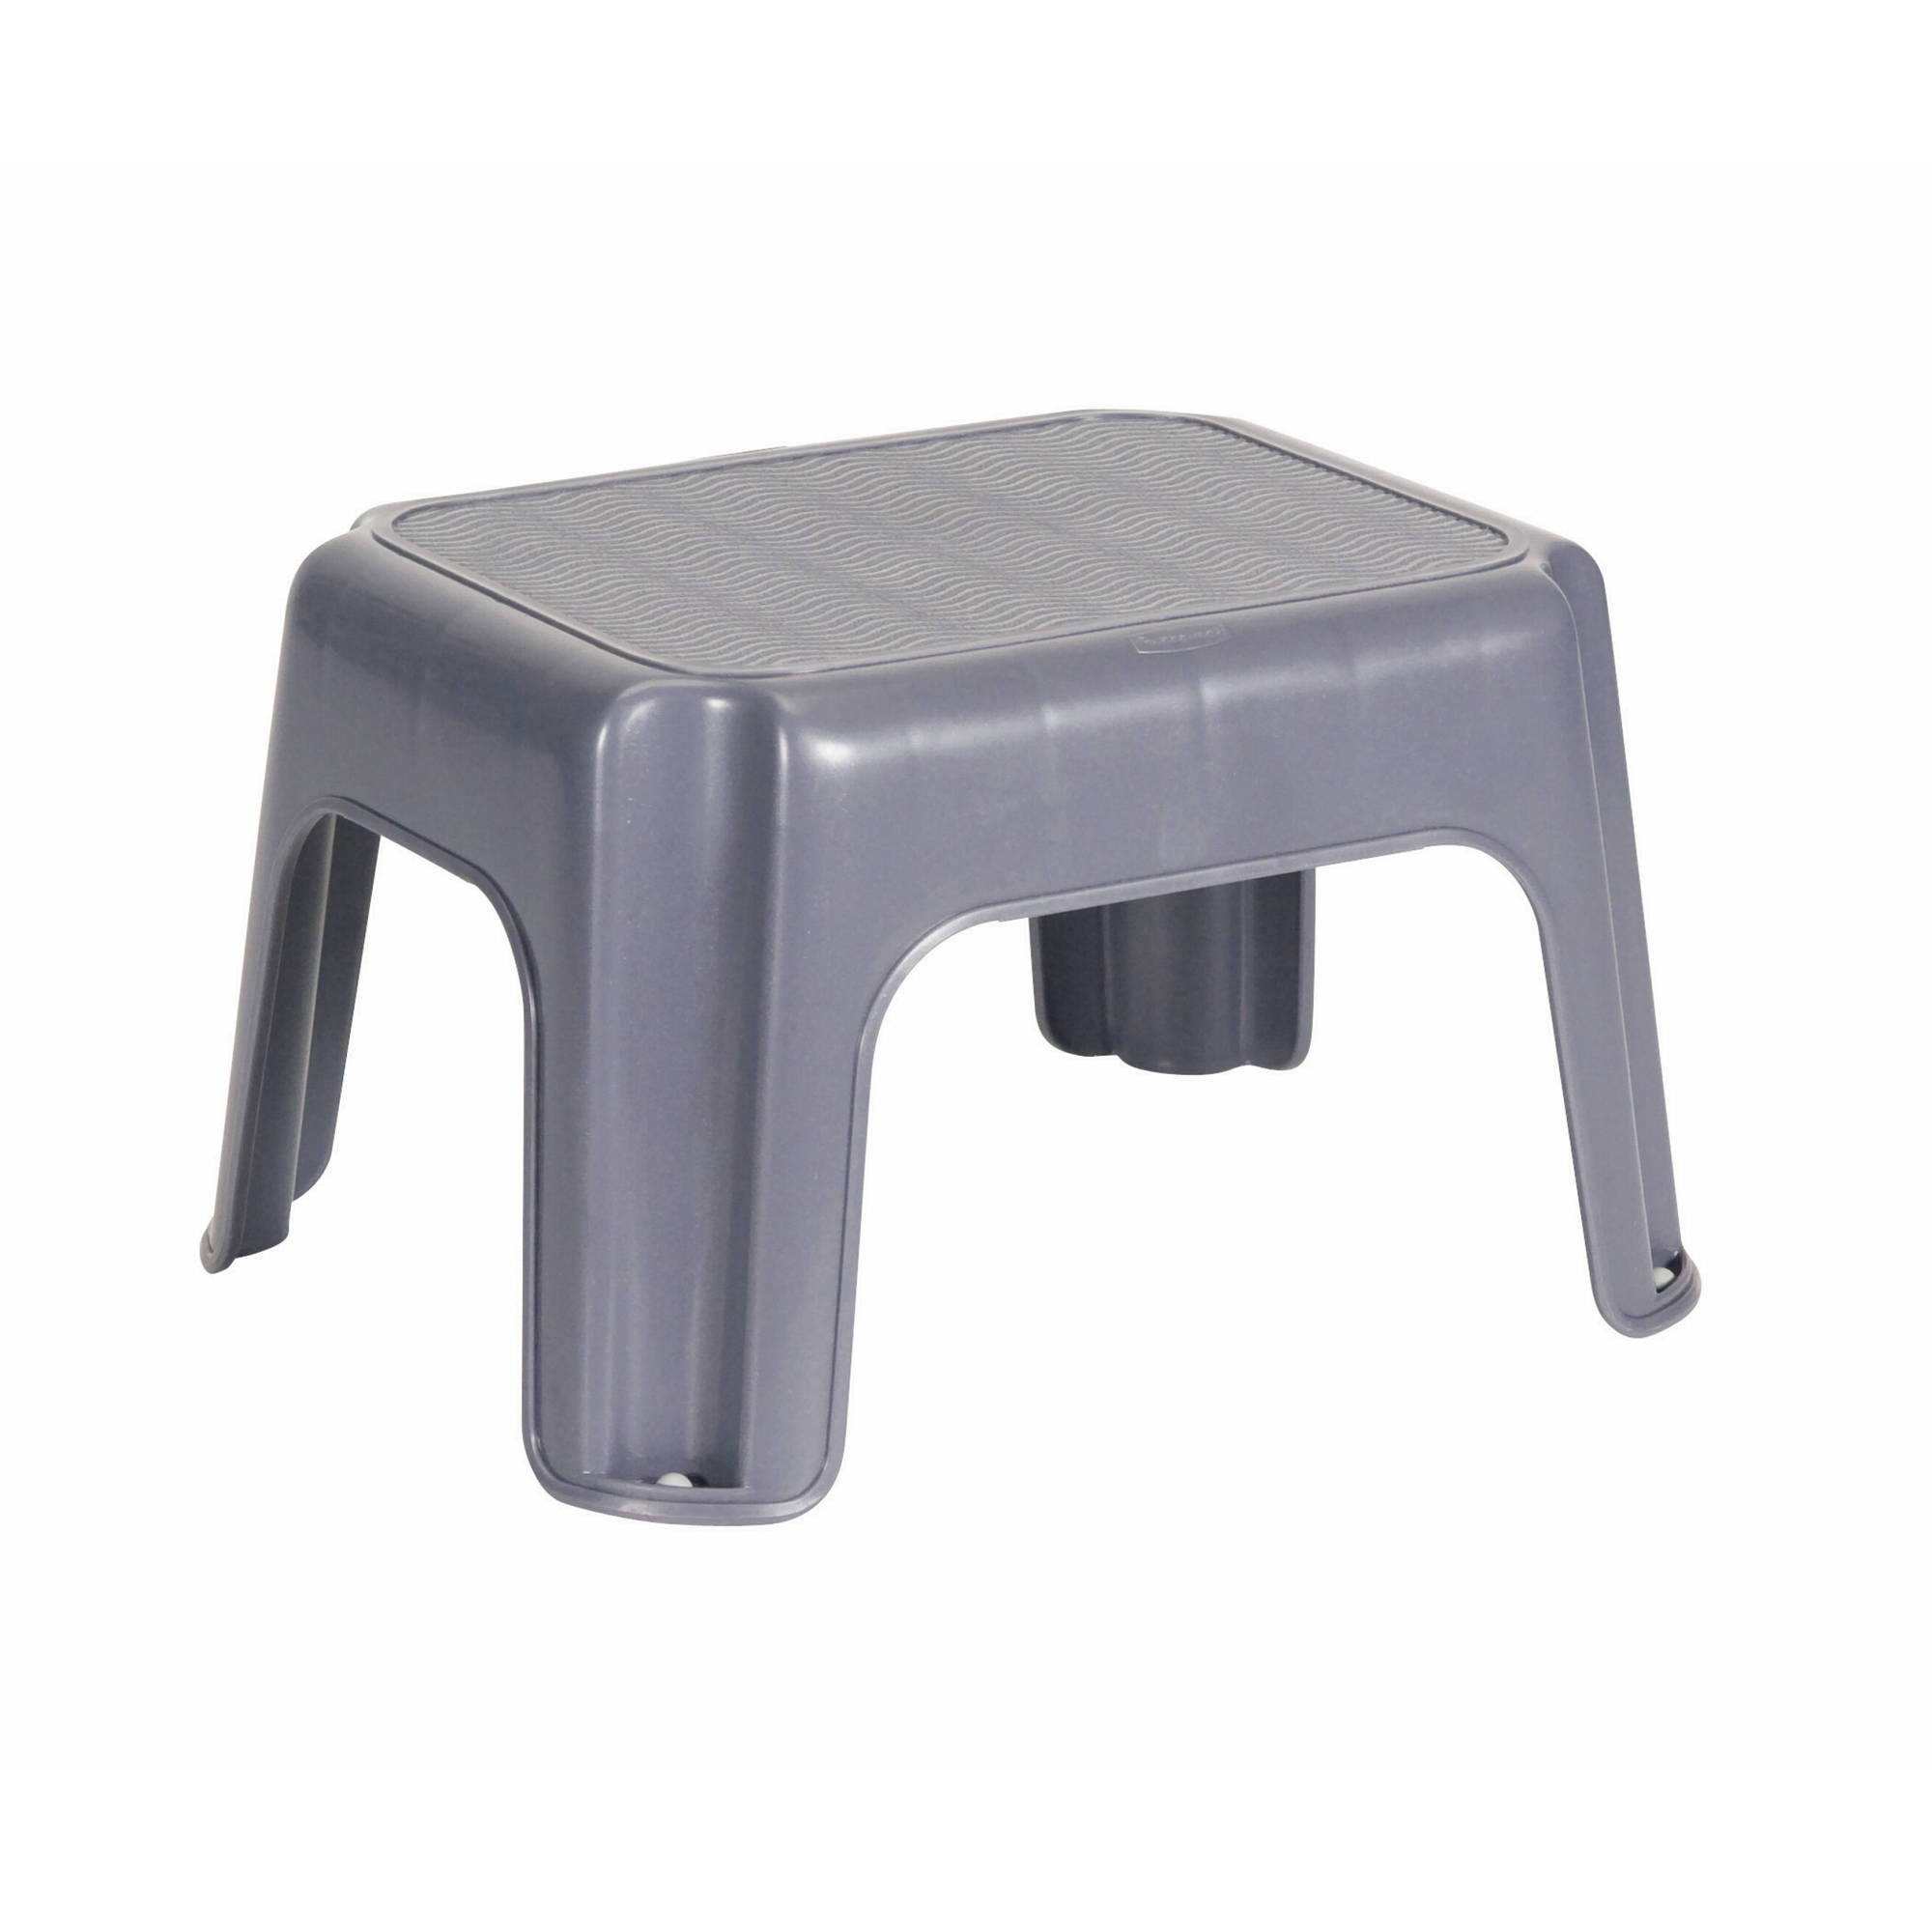 Rubbermaid Small Step Stool Black Walmart Com